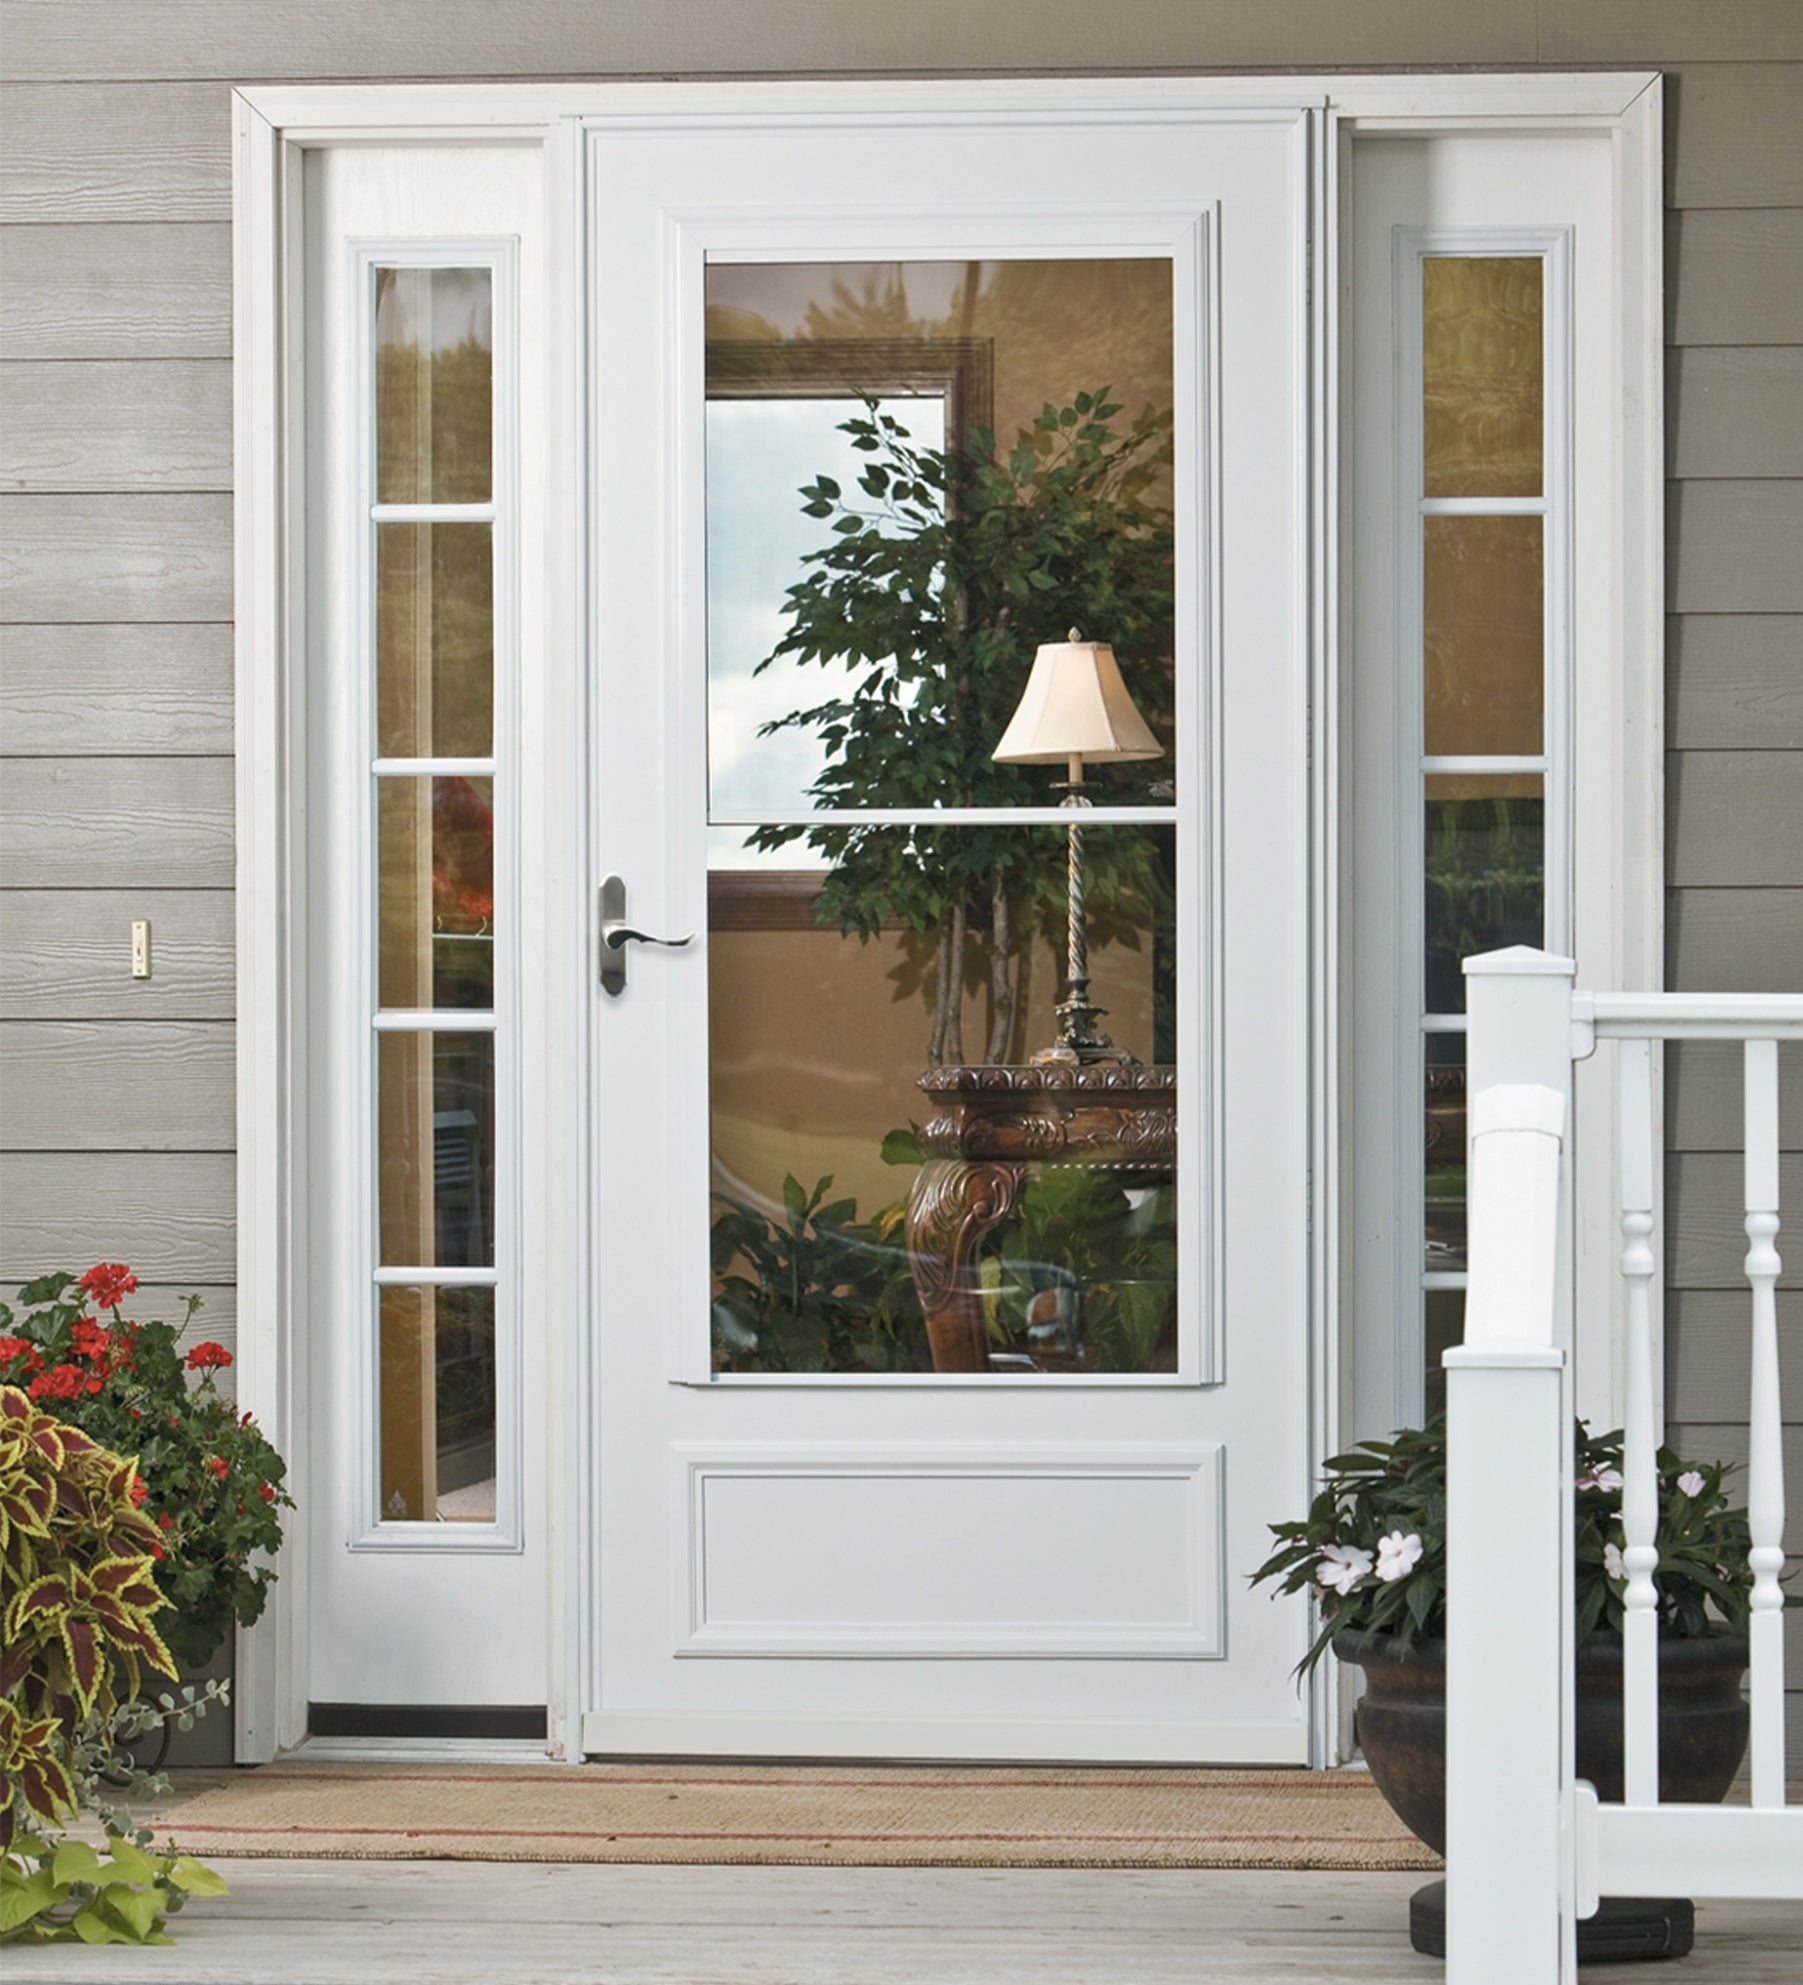 INSTALLED Larson Easy Vent Midview Storm Door w/ Hardware STARTING $720.99